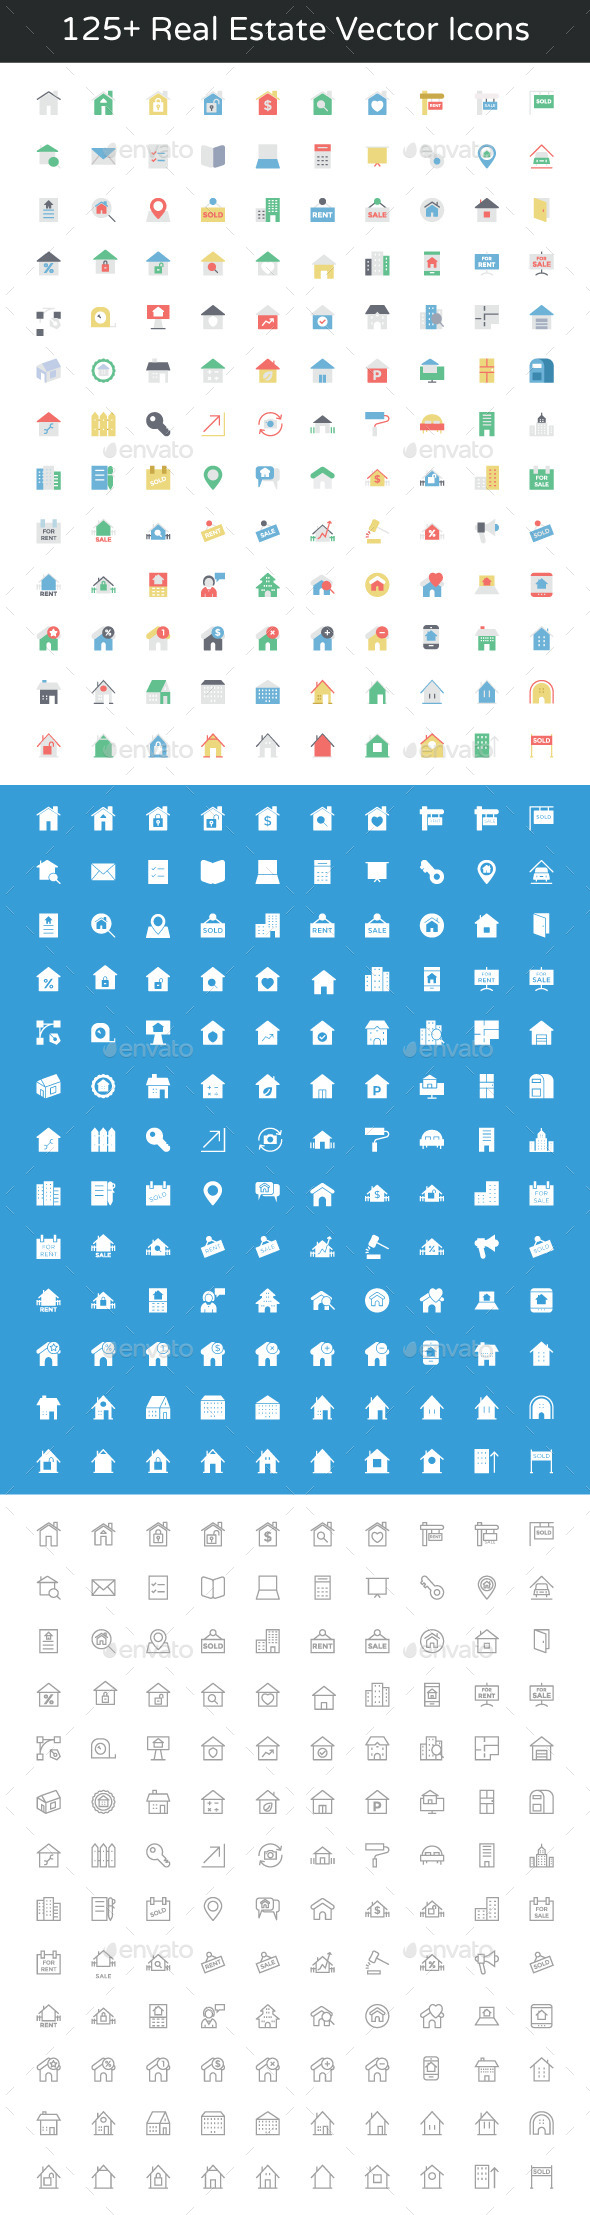 125+ Real Estate Vector Icons - Icons